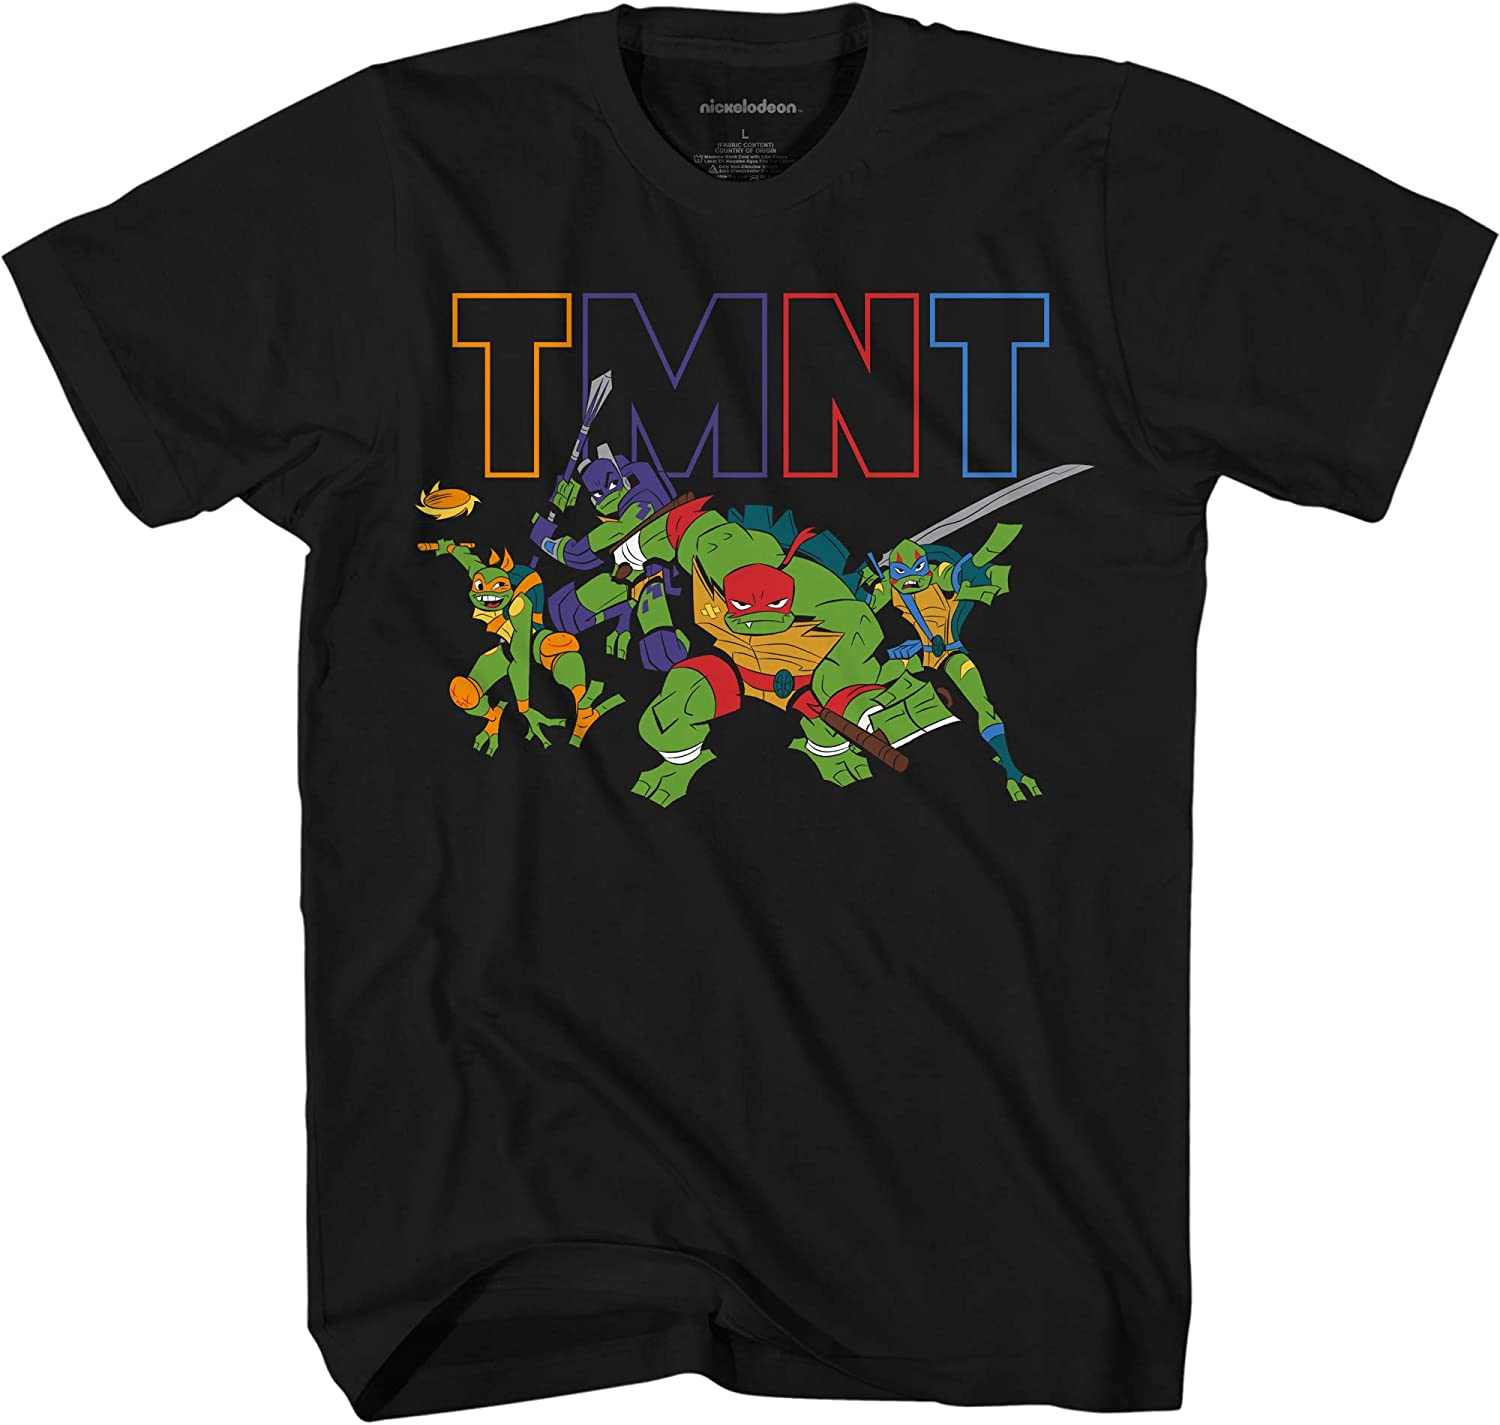 Teenage Mutant Ninja Turtles Boys' Little Rise TMNT T-Shirt